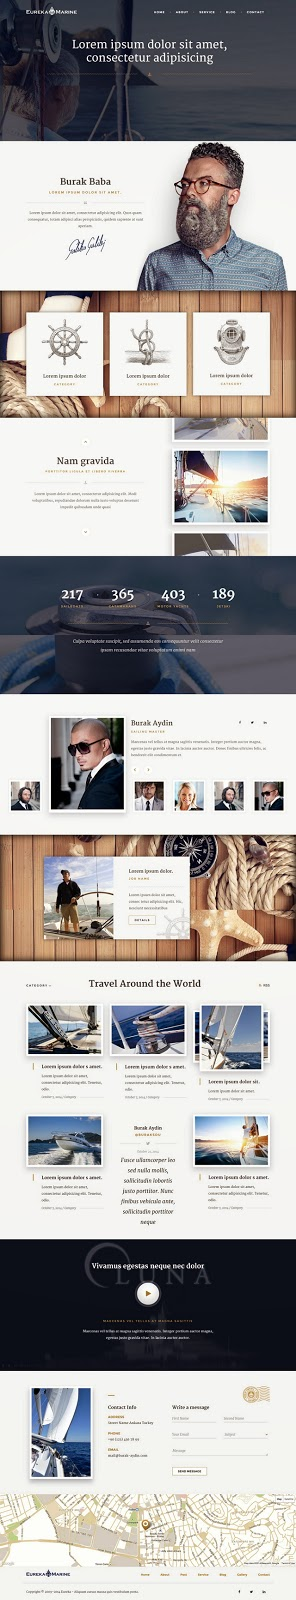 Yacht Luxury Lifestyle Website Template